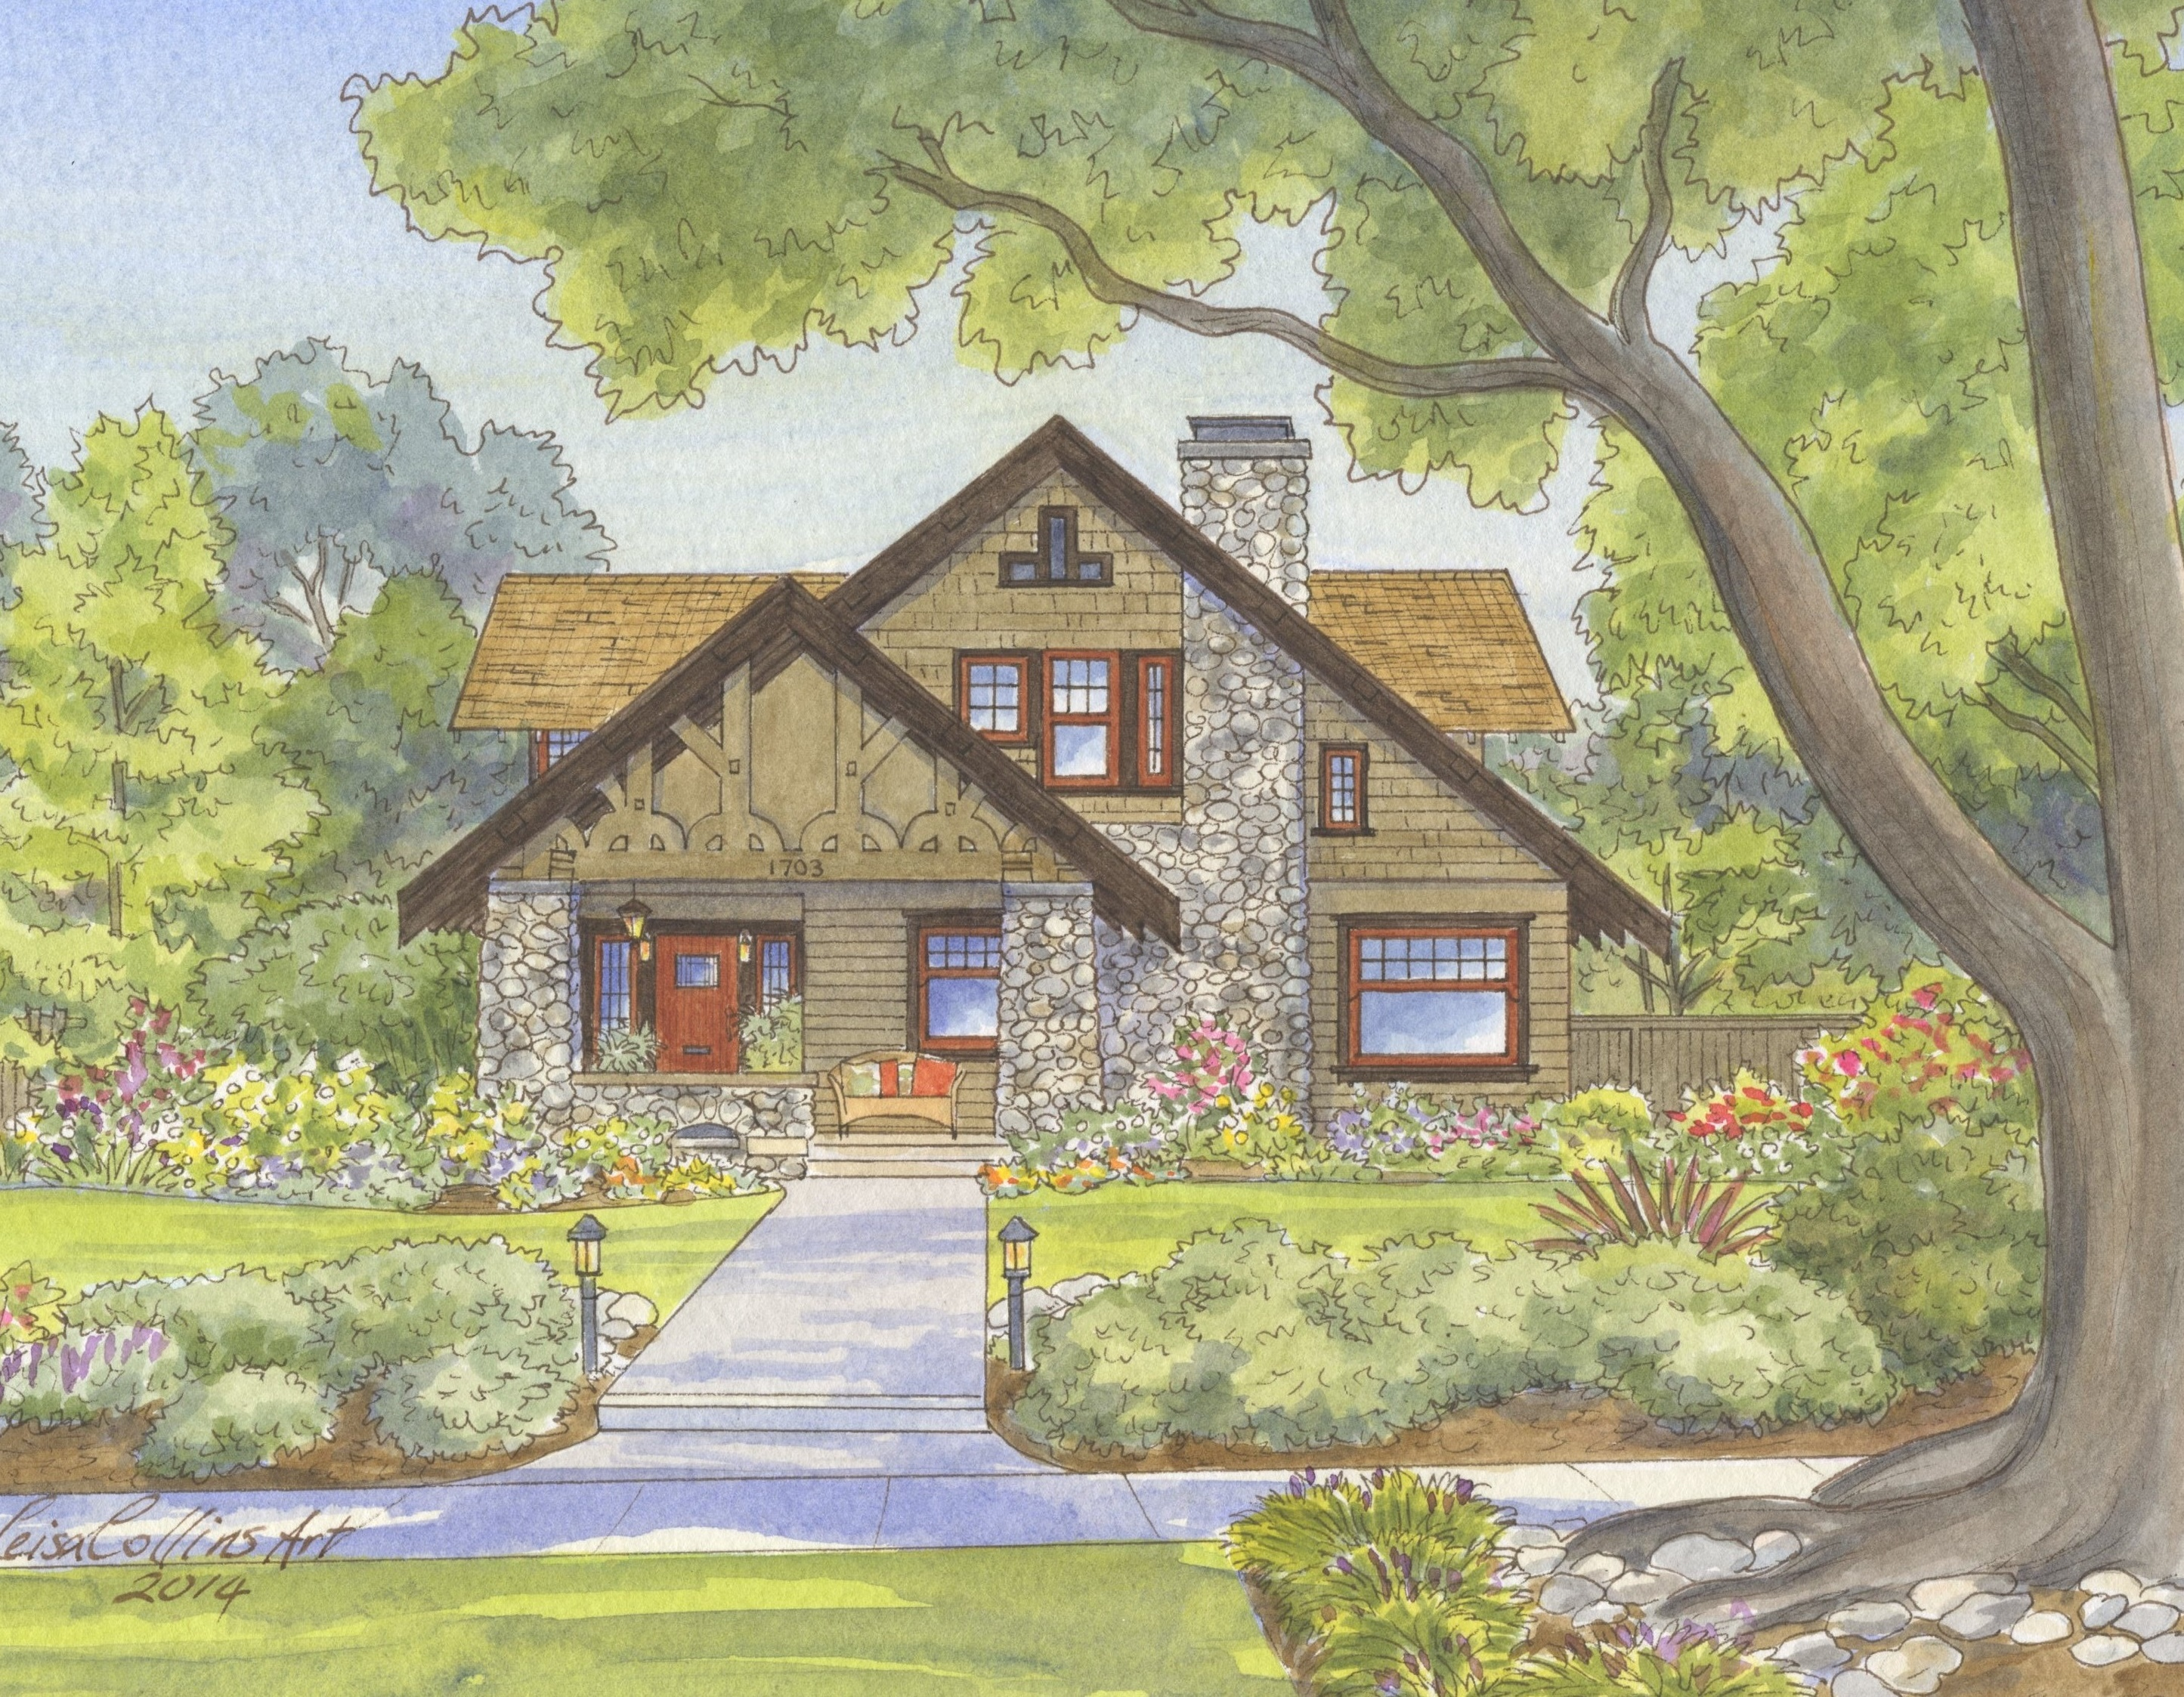 1703-Milan-Ave-S.-Pasadena-COMMISSION-for-Alison-McCrary